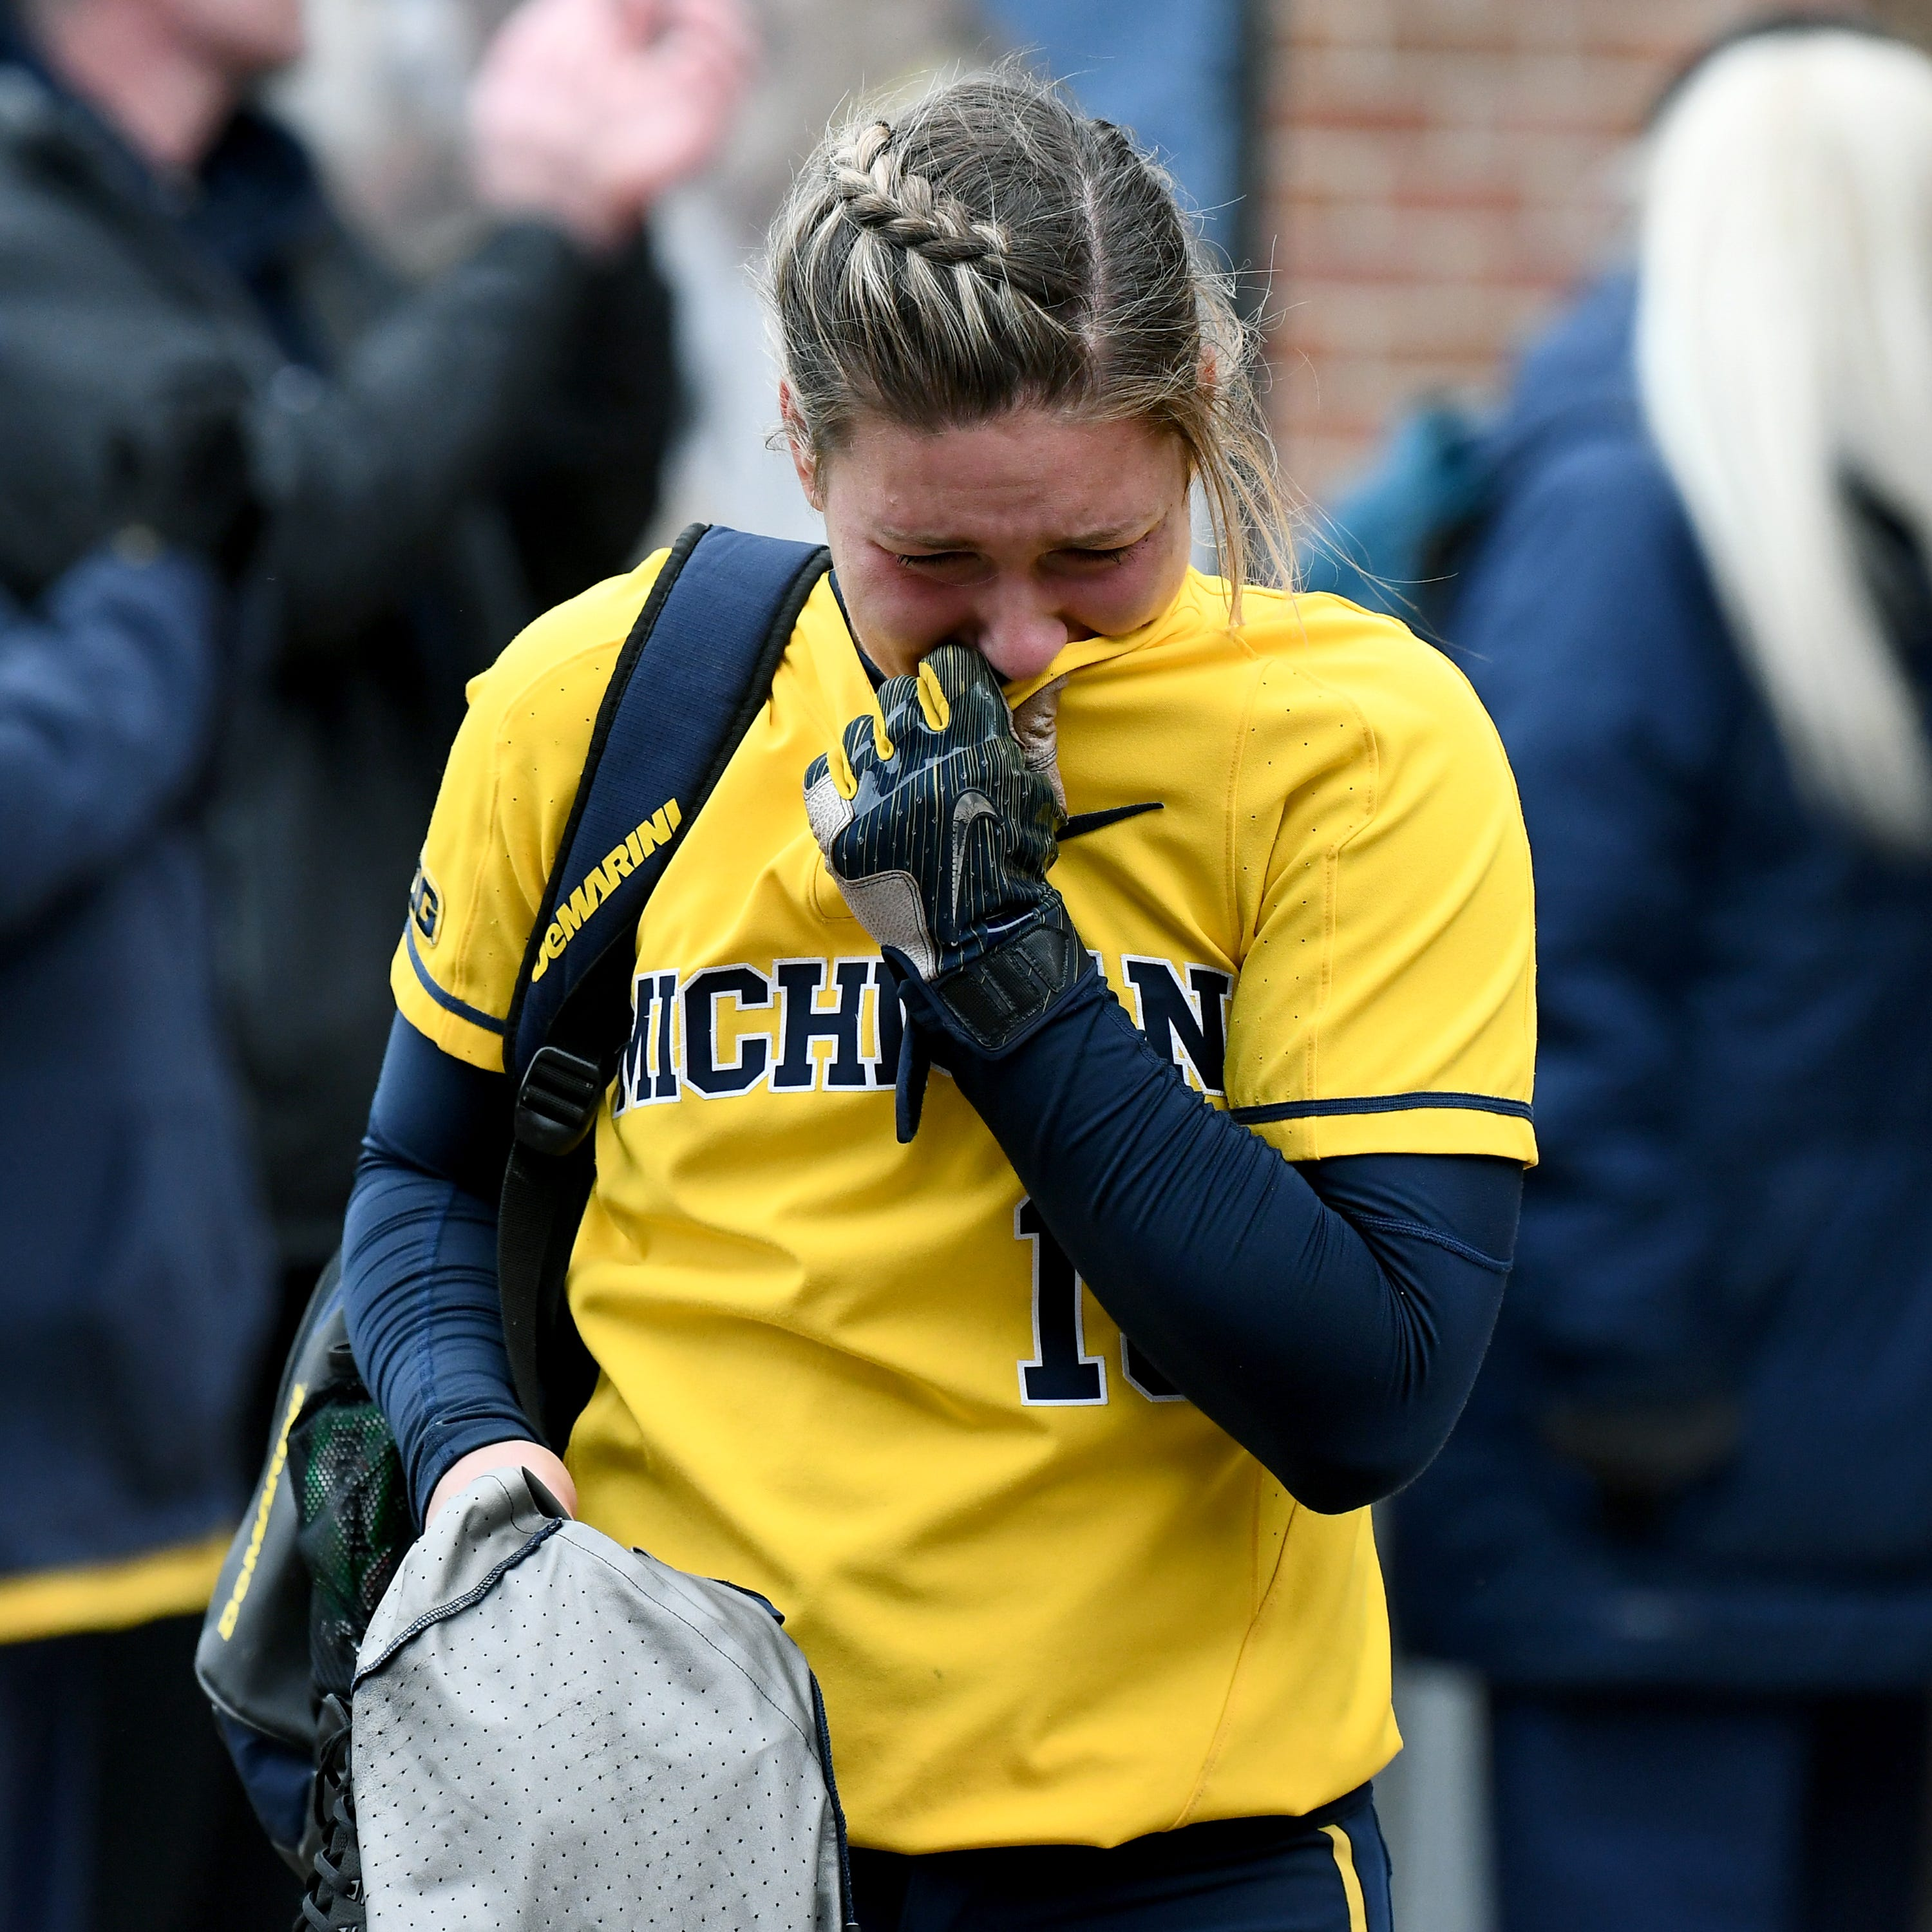 'Just wasn't enough': Michigan softball swept out of NCAAs by James Madison